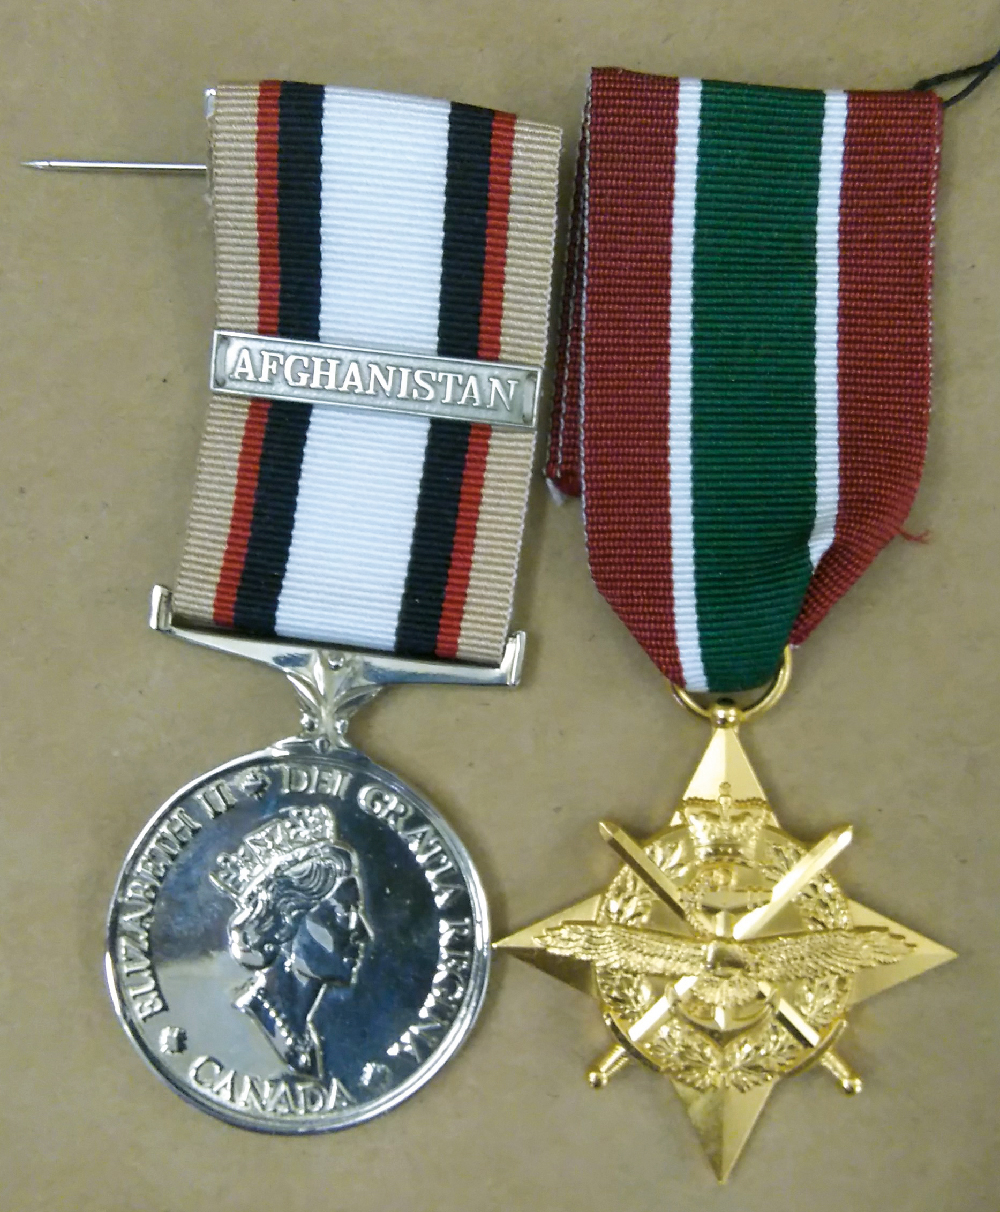 A substantial percentage of the Regiment volunteered to serve in Afghanistan. Two members of the regiment were Wounded in Action and thus received the Sacrifice Medal.